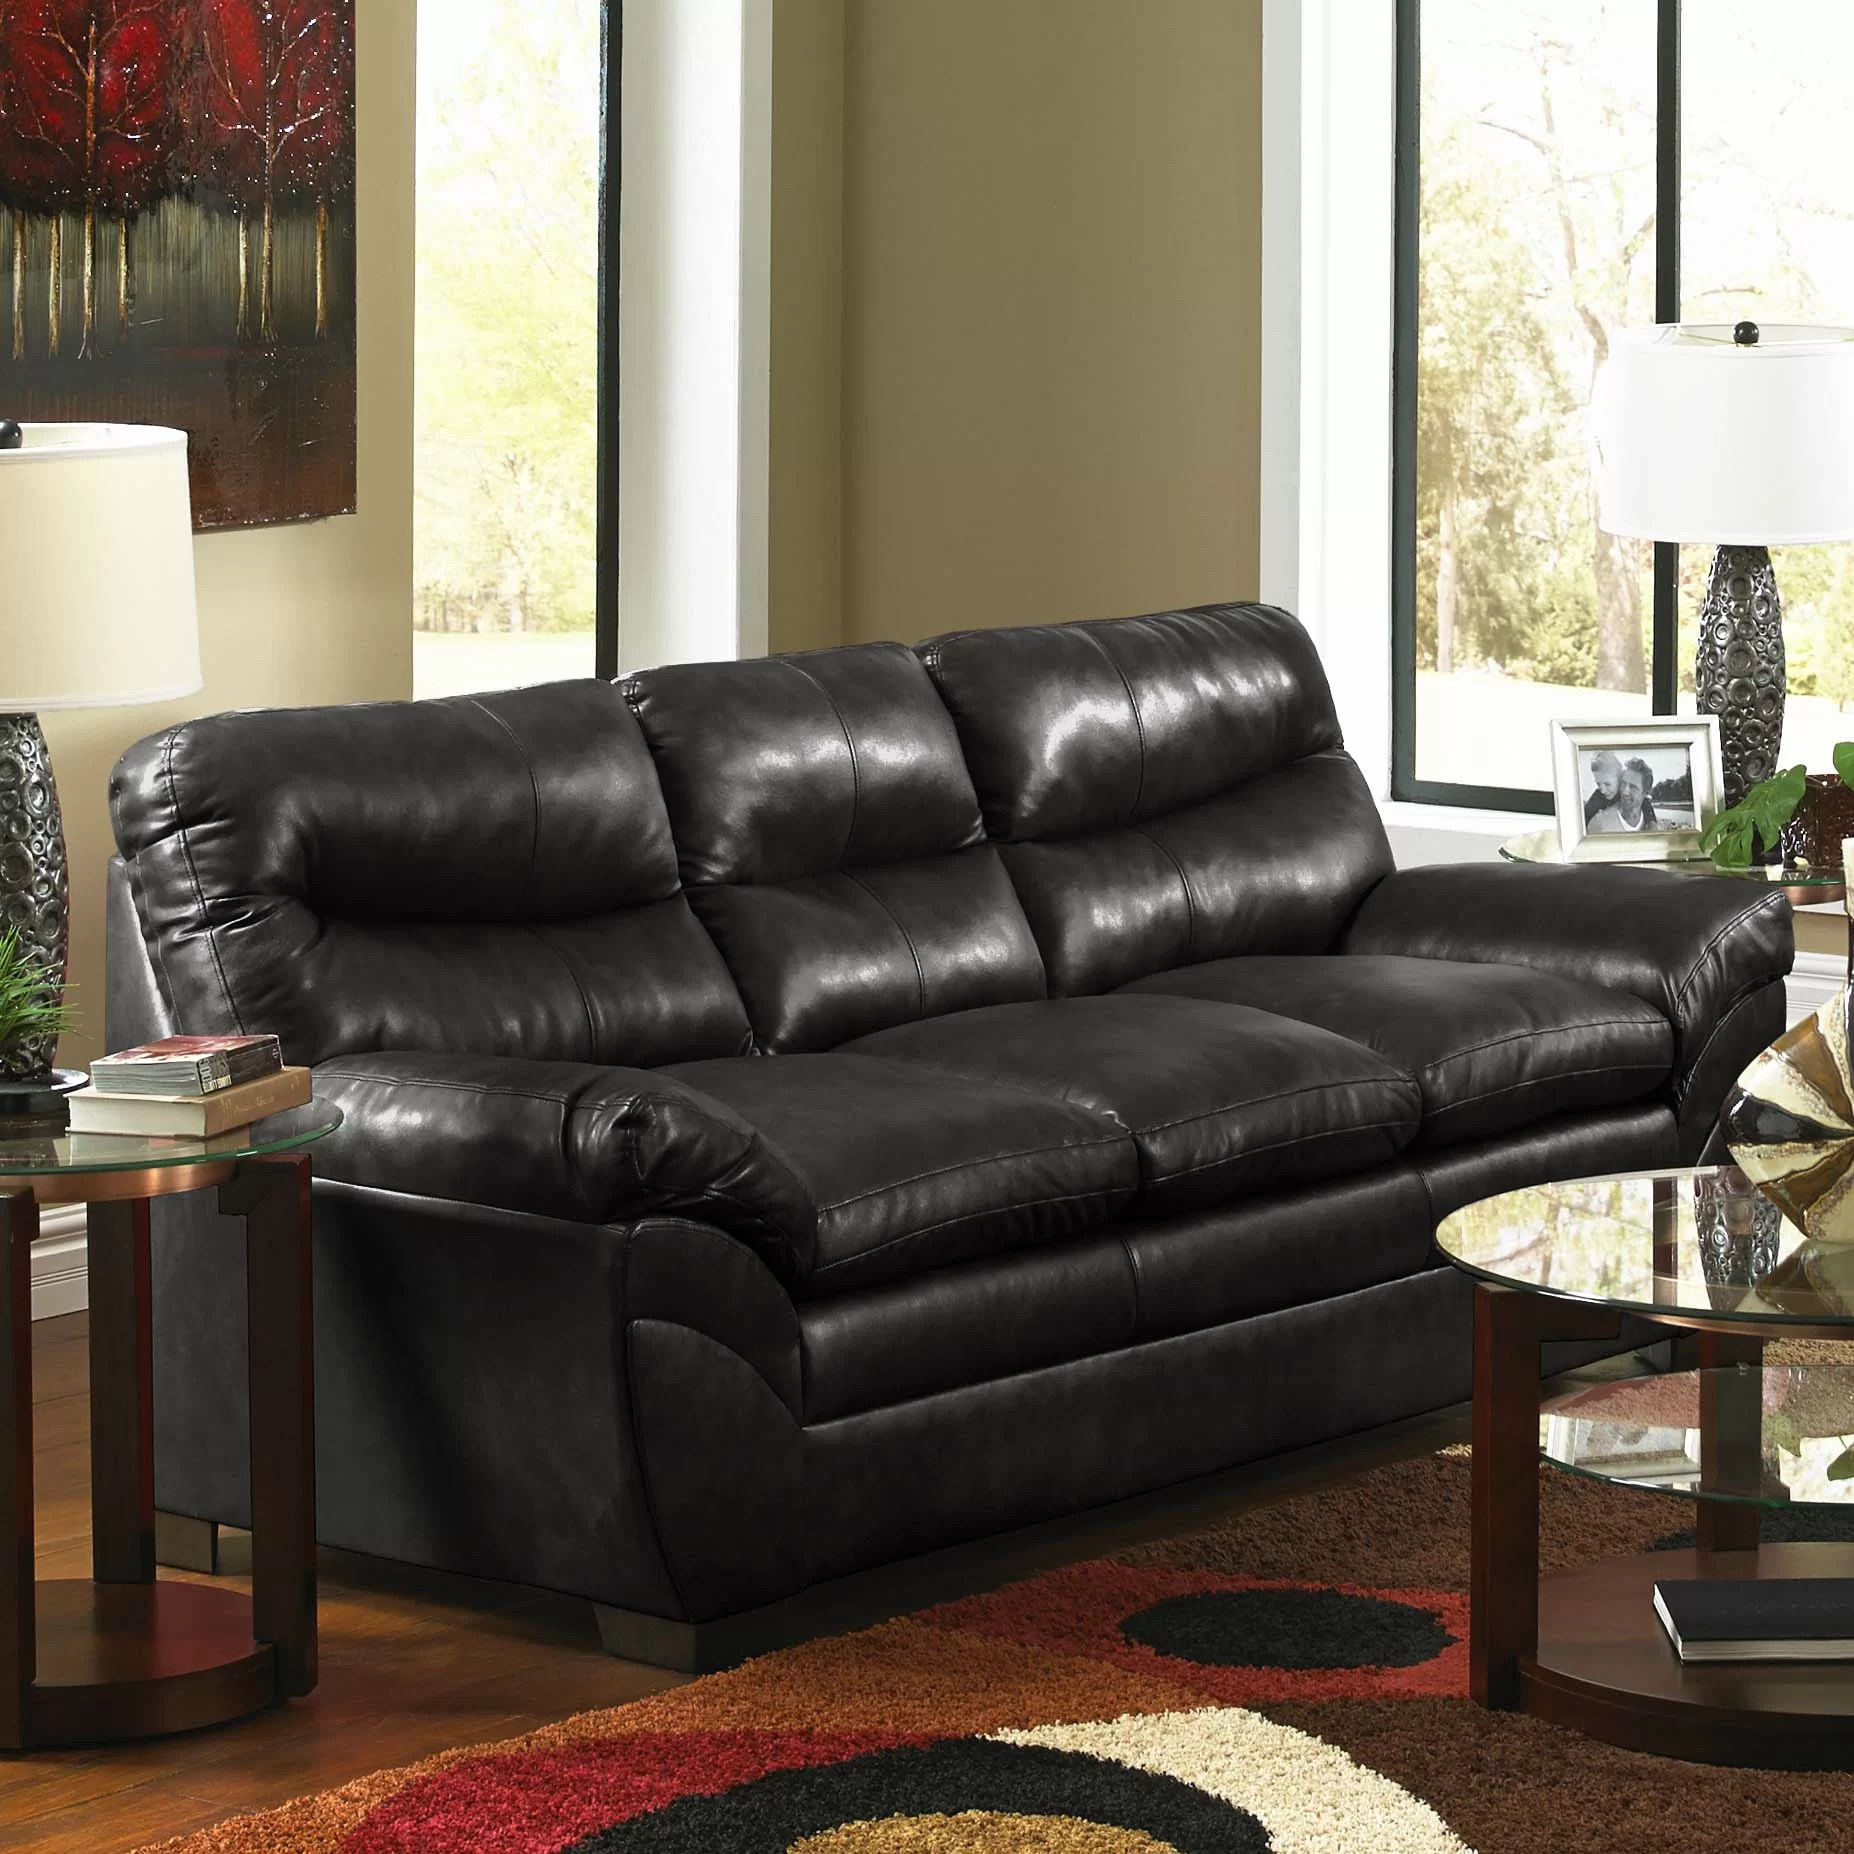 brooklyn bonded leather lounger chair and ottoman kids gaming simmons upholstery soho sofa reviews wayfair